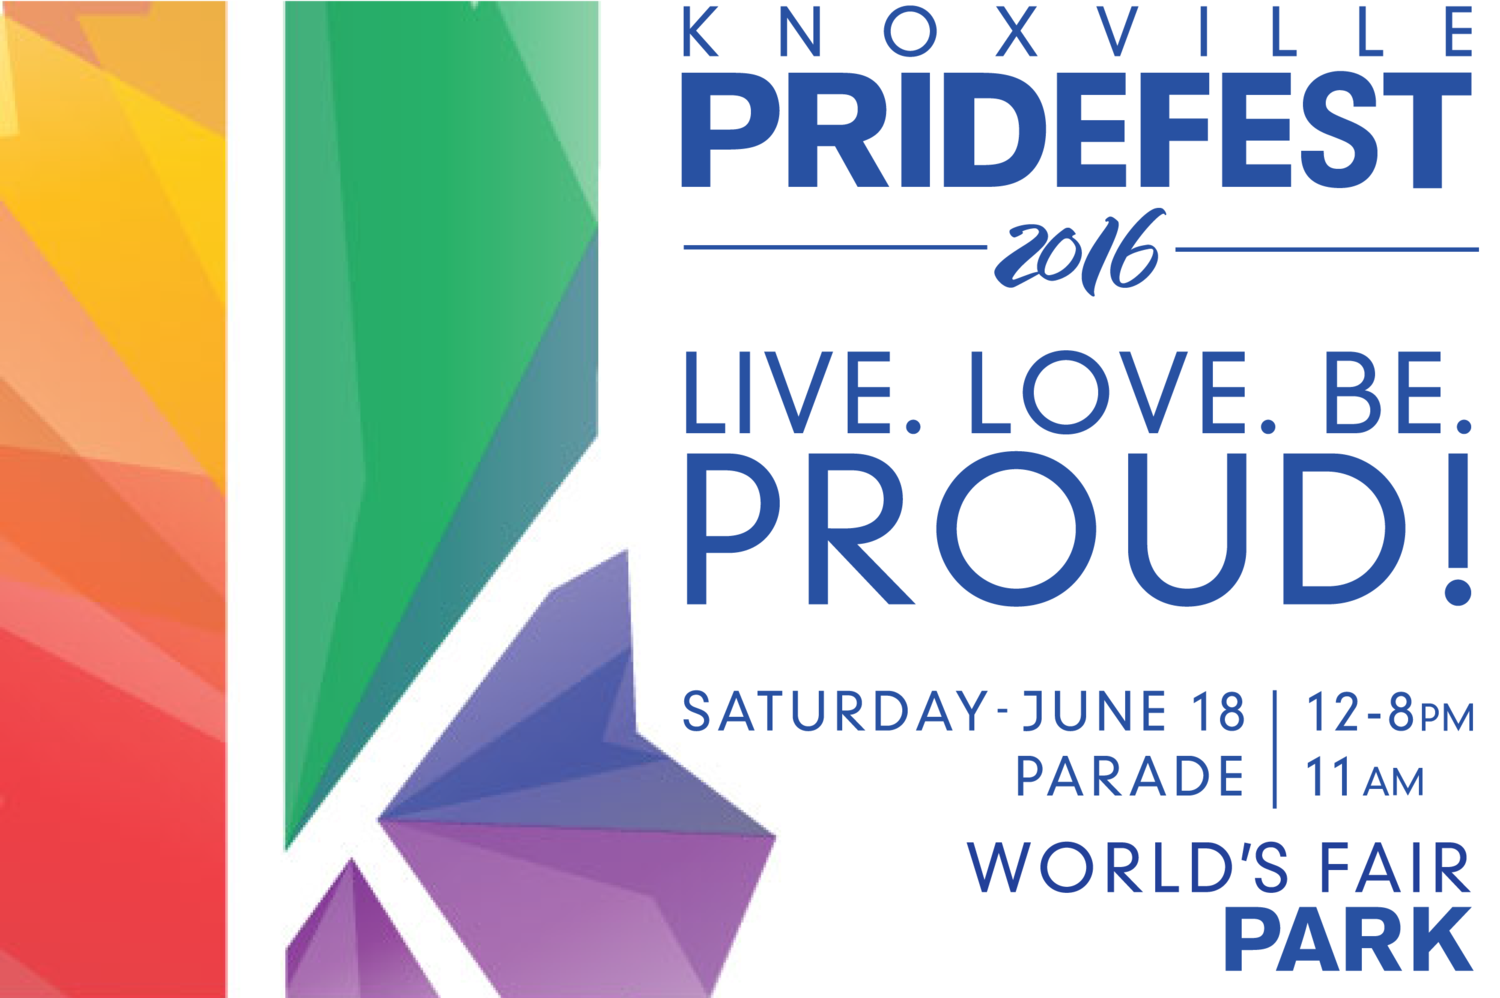 Knoxville PrideFest 2016